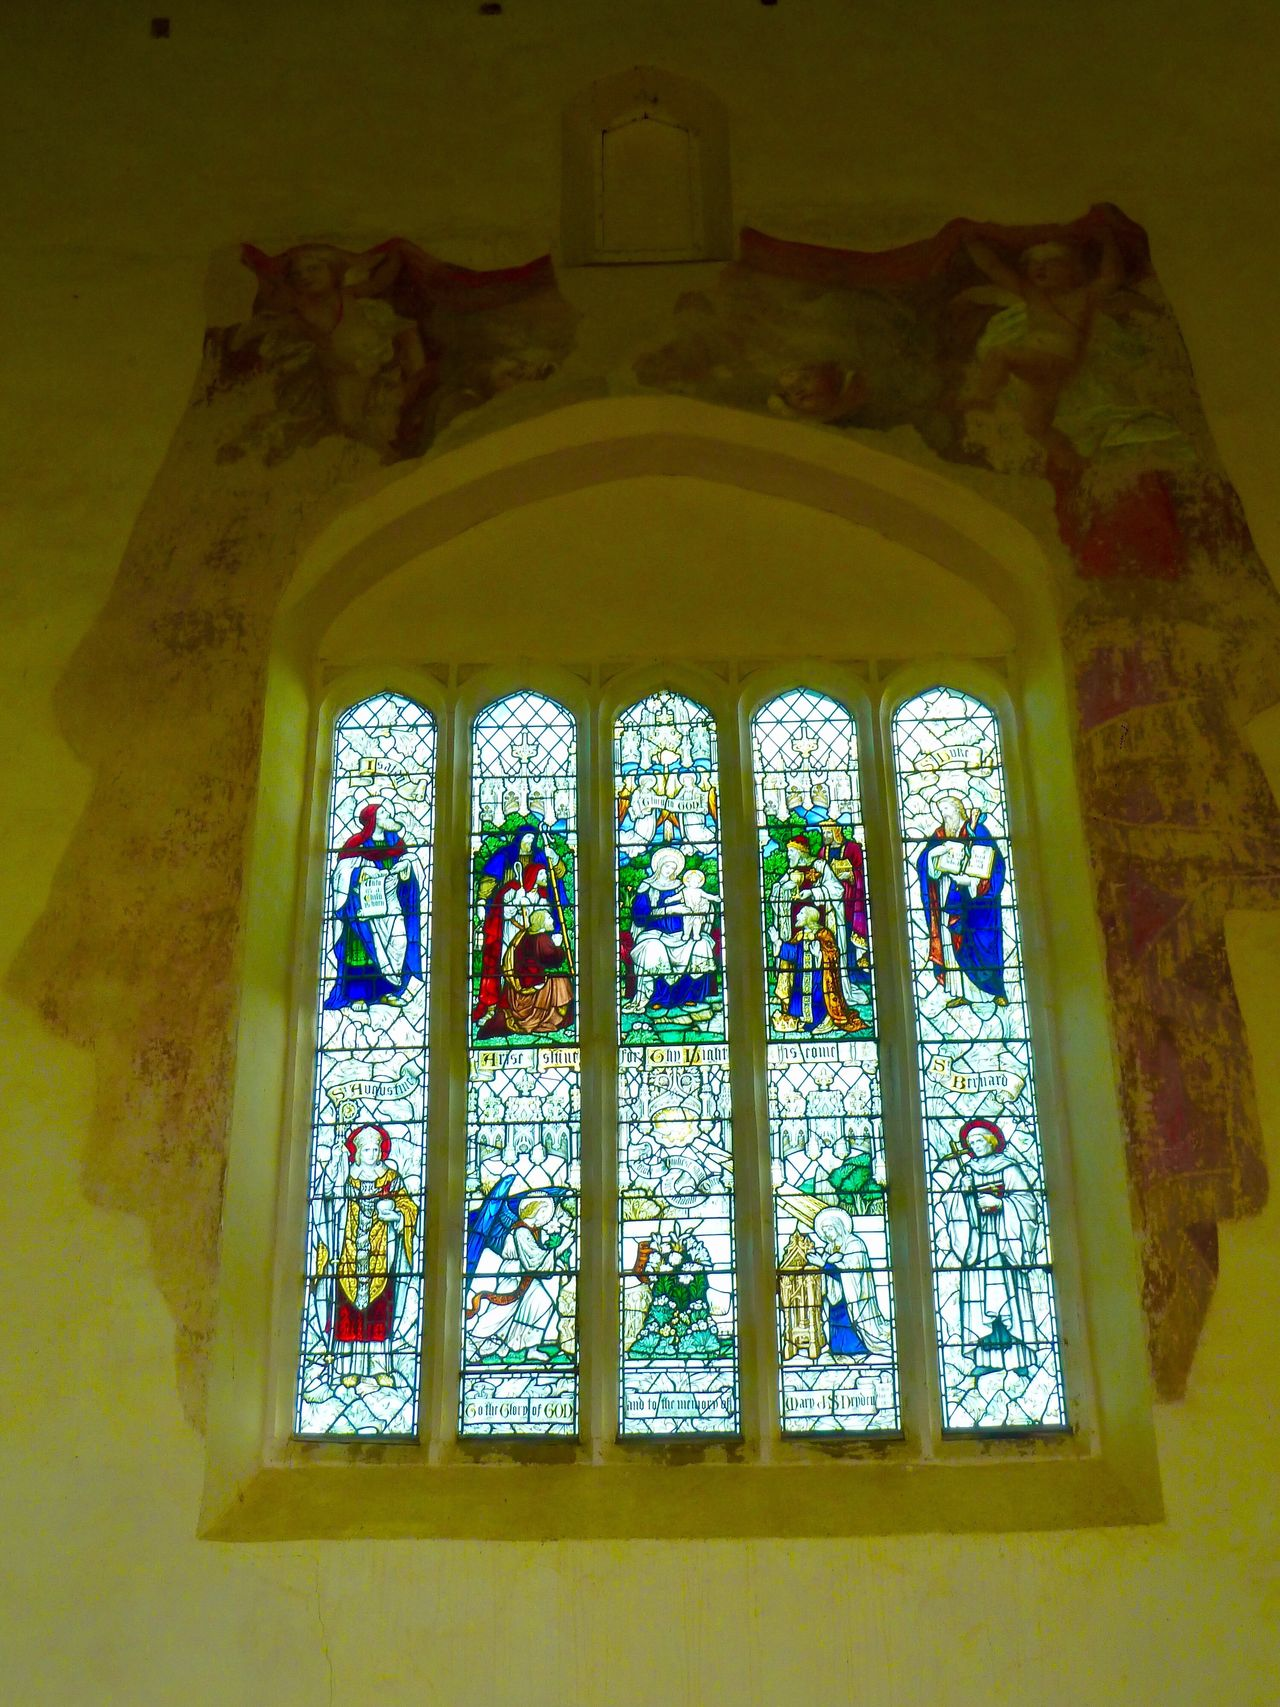 Priors Ashby Church Stained Glass Window Window Multi Colored Stained Glass Indoors  Low Angle View No People Religion Day Spirituality Place Of Worship Architecture